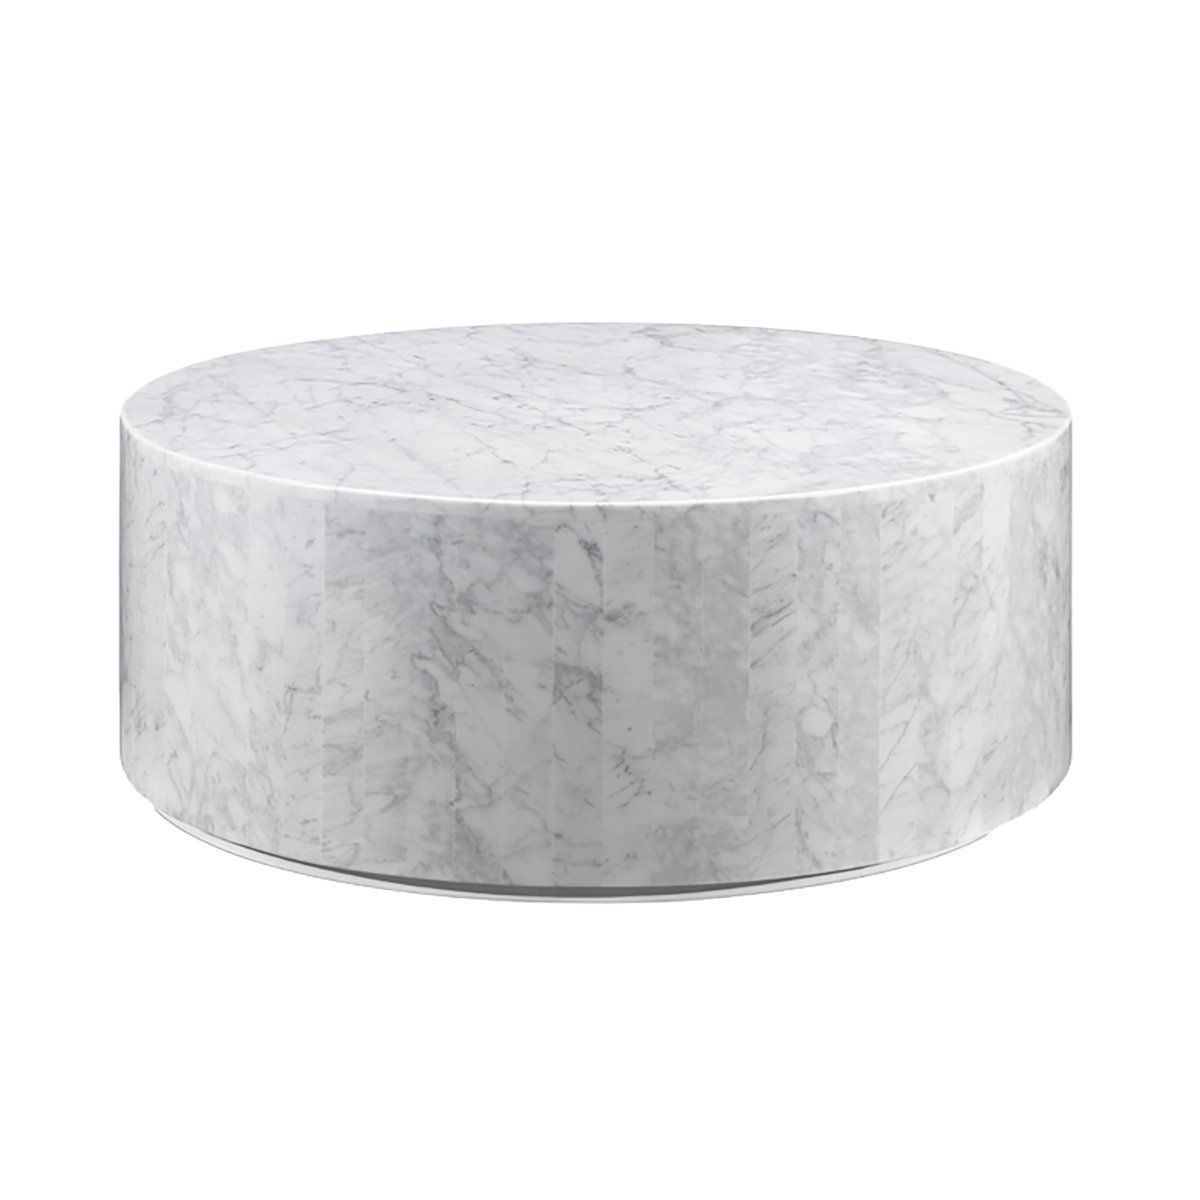 Carrara Marble Drum Coffee Table Drum Coffee Table Mid Century